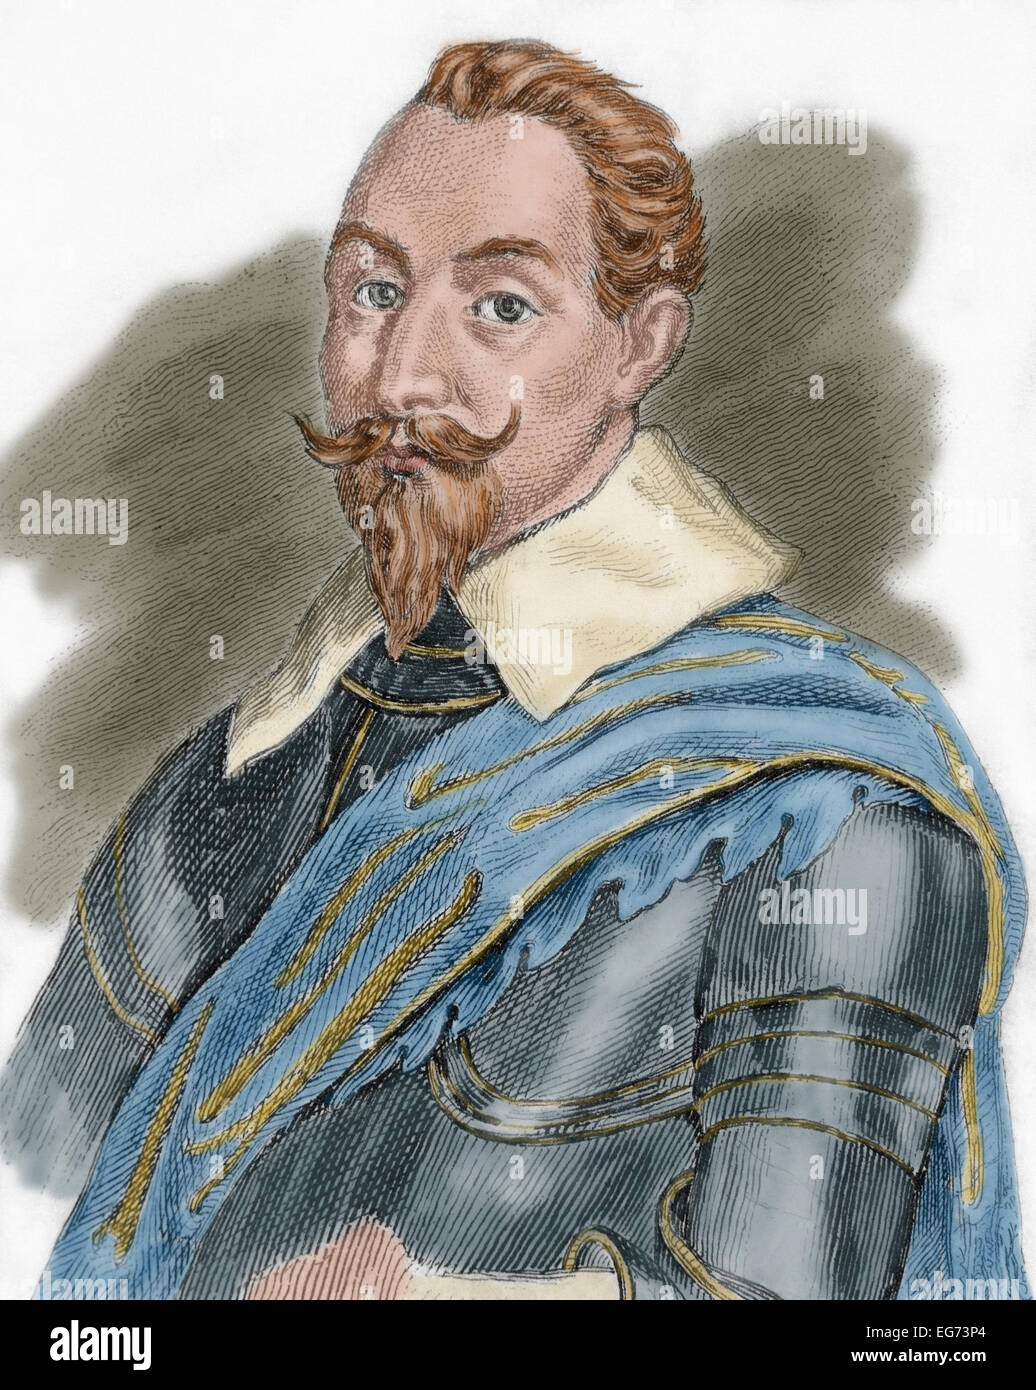 Gustav II Adolf (1594-1632). King of Sweden from 1611 to 1632. Portrait. Engraving. Colored. Stock Photo